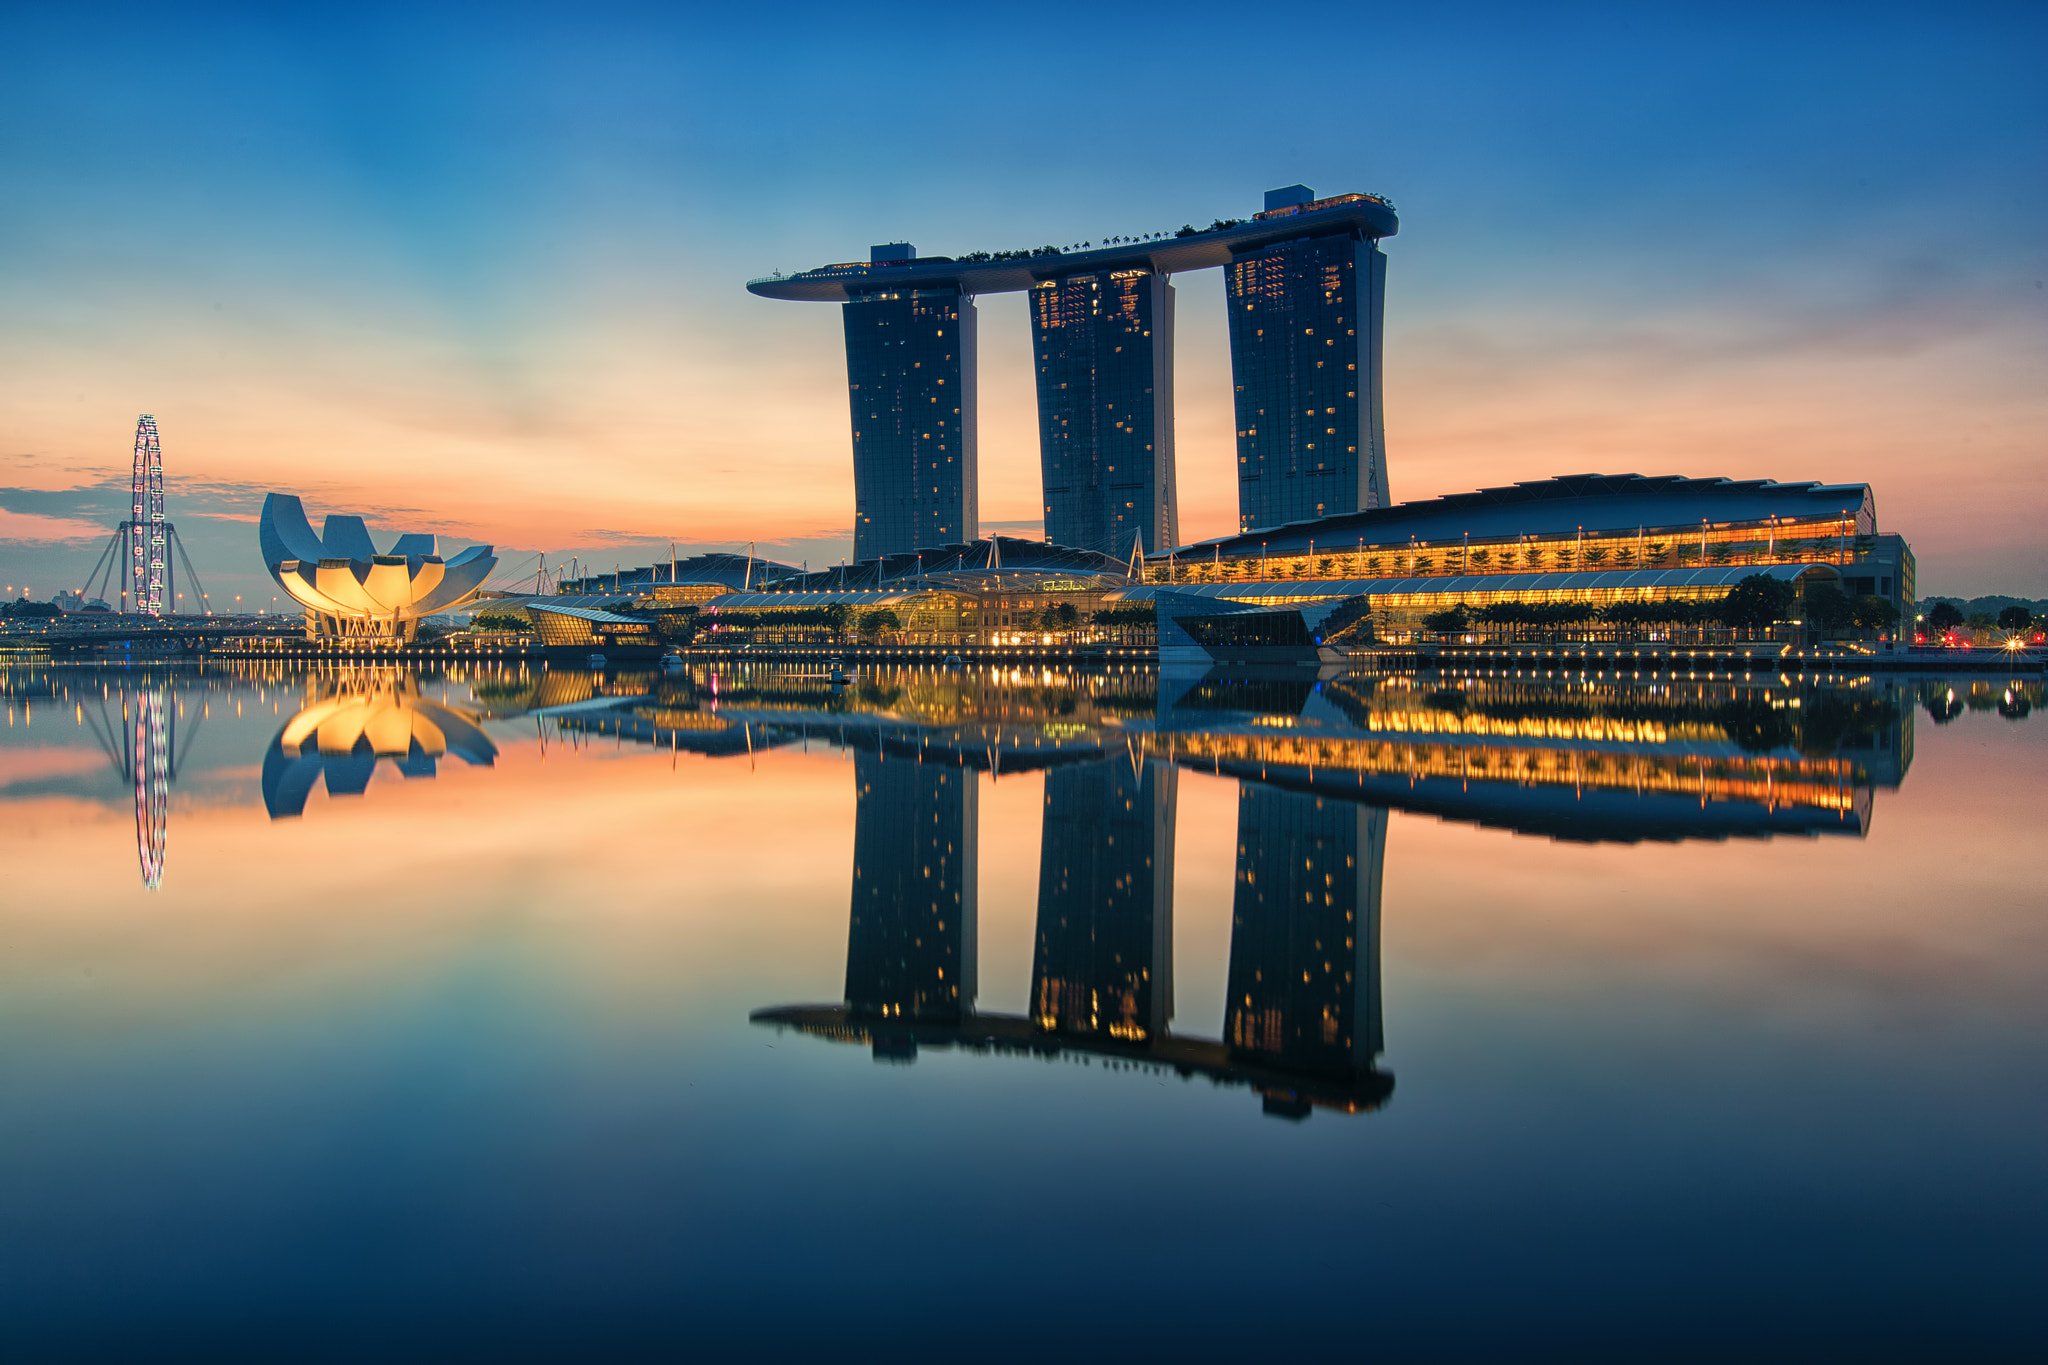 Photograph Dawn Hour at Marina Bay Sand by Jacobs LB on 500px